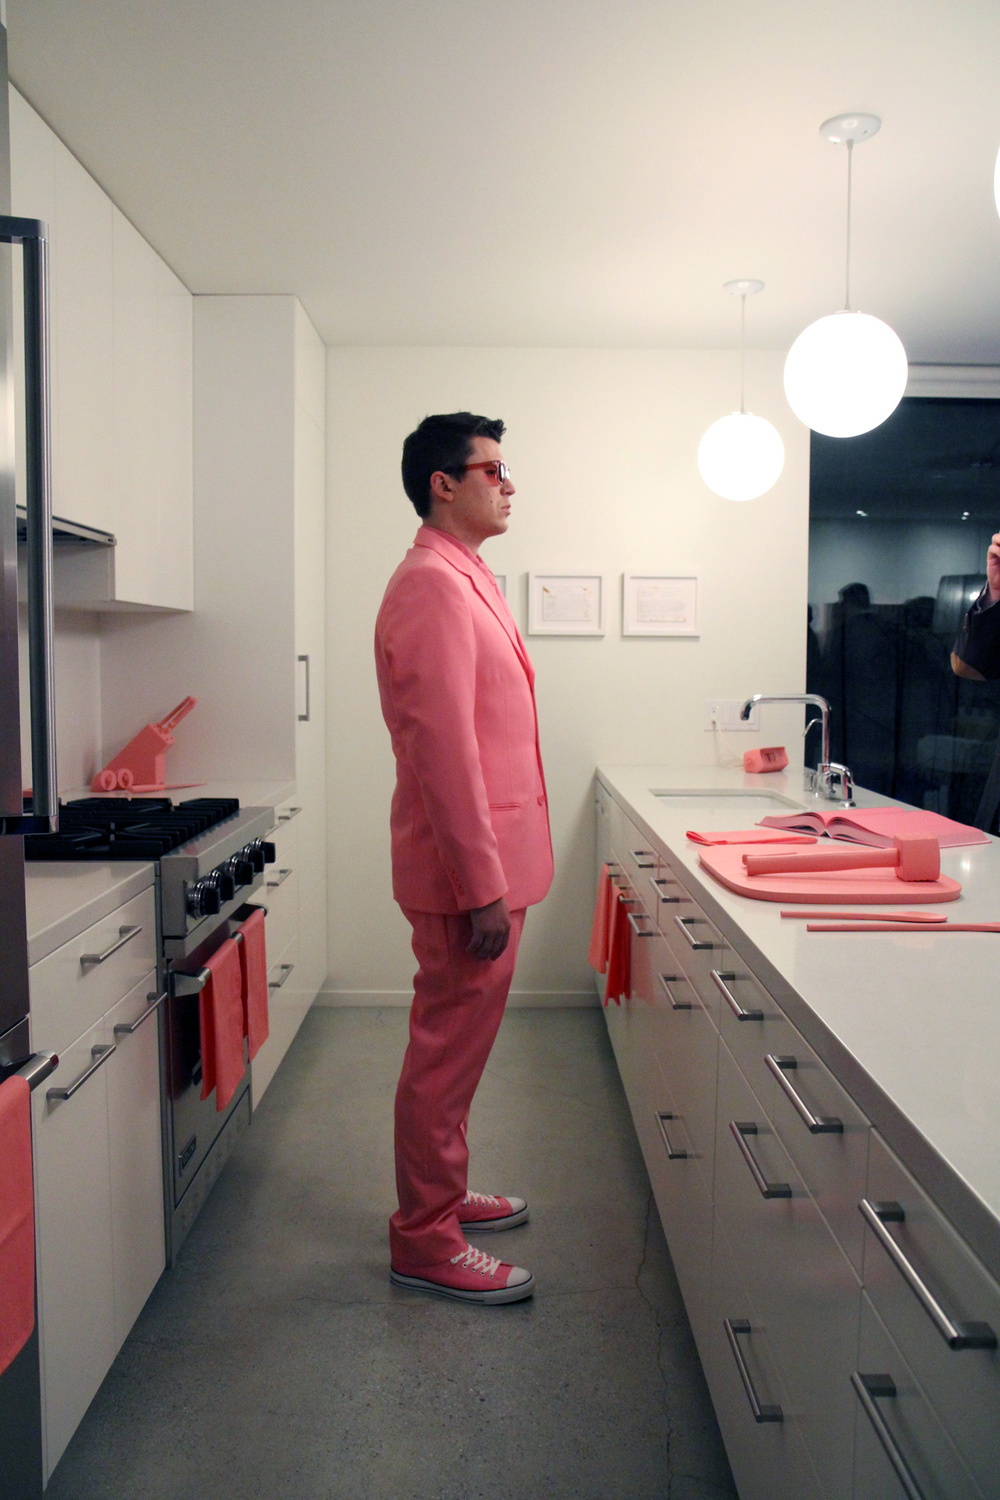 "The Schauss Kitchen (Cooking)  Baker-Miller Pink painted kitchen objects, Baker-Miller Pink ""cookbook,"" Baker-Miller Pink color therapy glasses, custom Baker-Miller Pink suit Installation dimensions variable, performance duration 15 minutes Marine Contemporary Art Salon, Venice, CA. 7:30pm, February 9th, 2013 Photo Courtesy of Sean Flaherty"